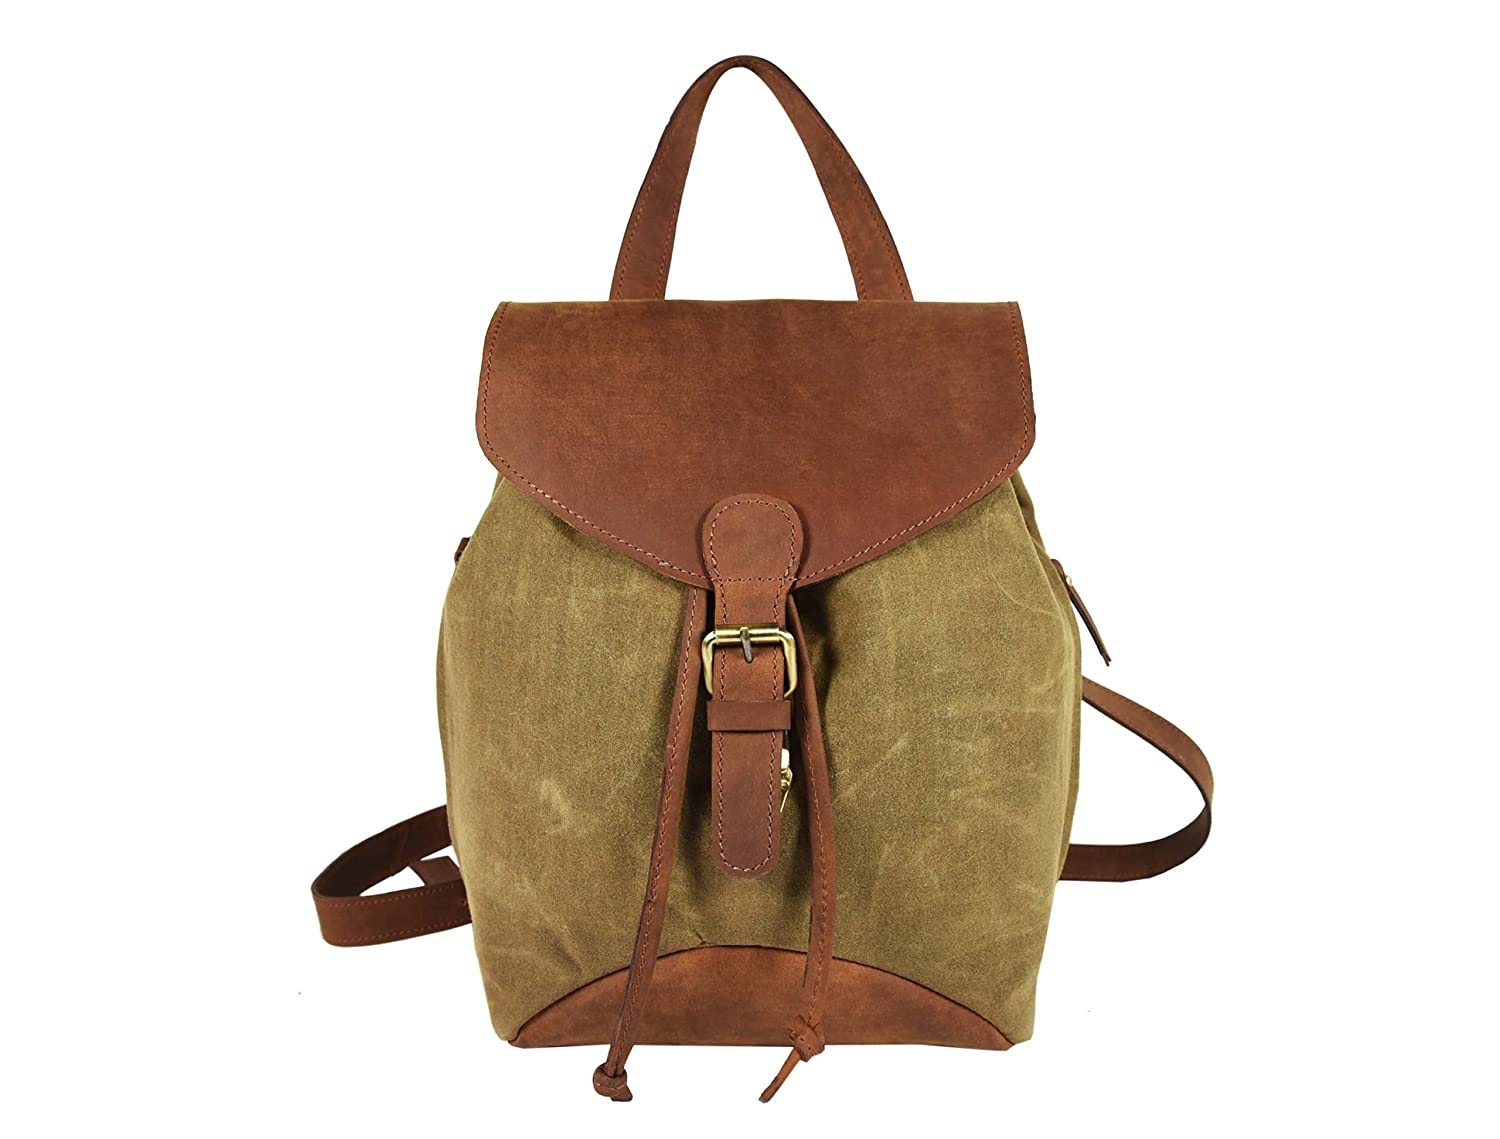 BagWatiIN Vintage Waterproof Leather Canvas Messenger Shoulder Bag